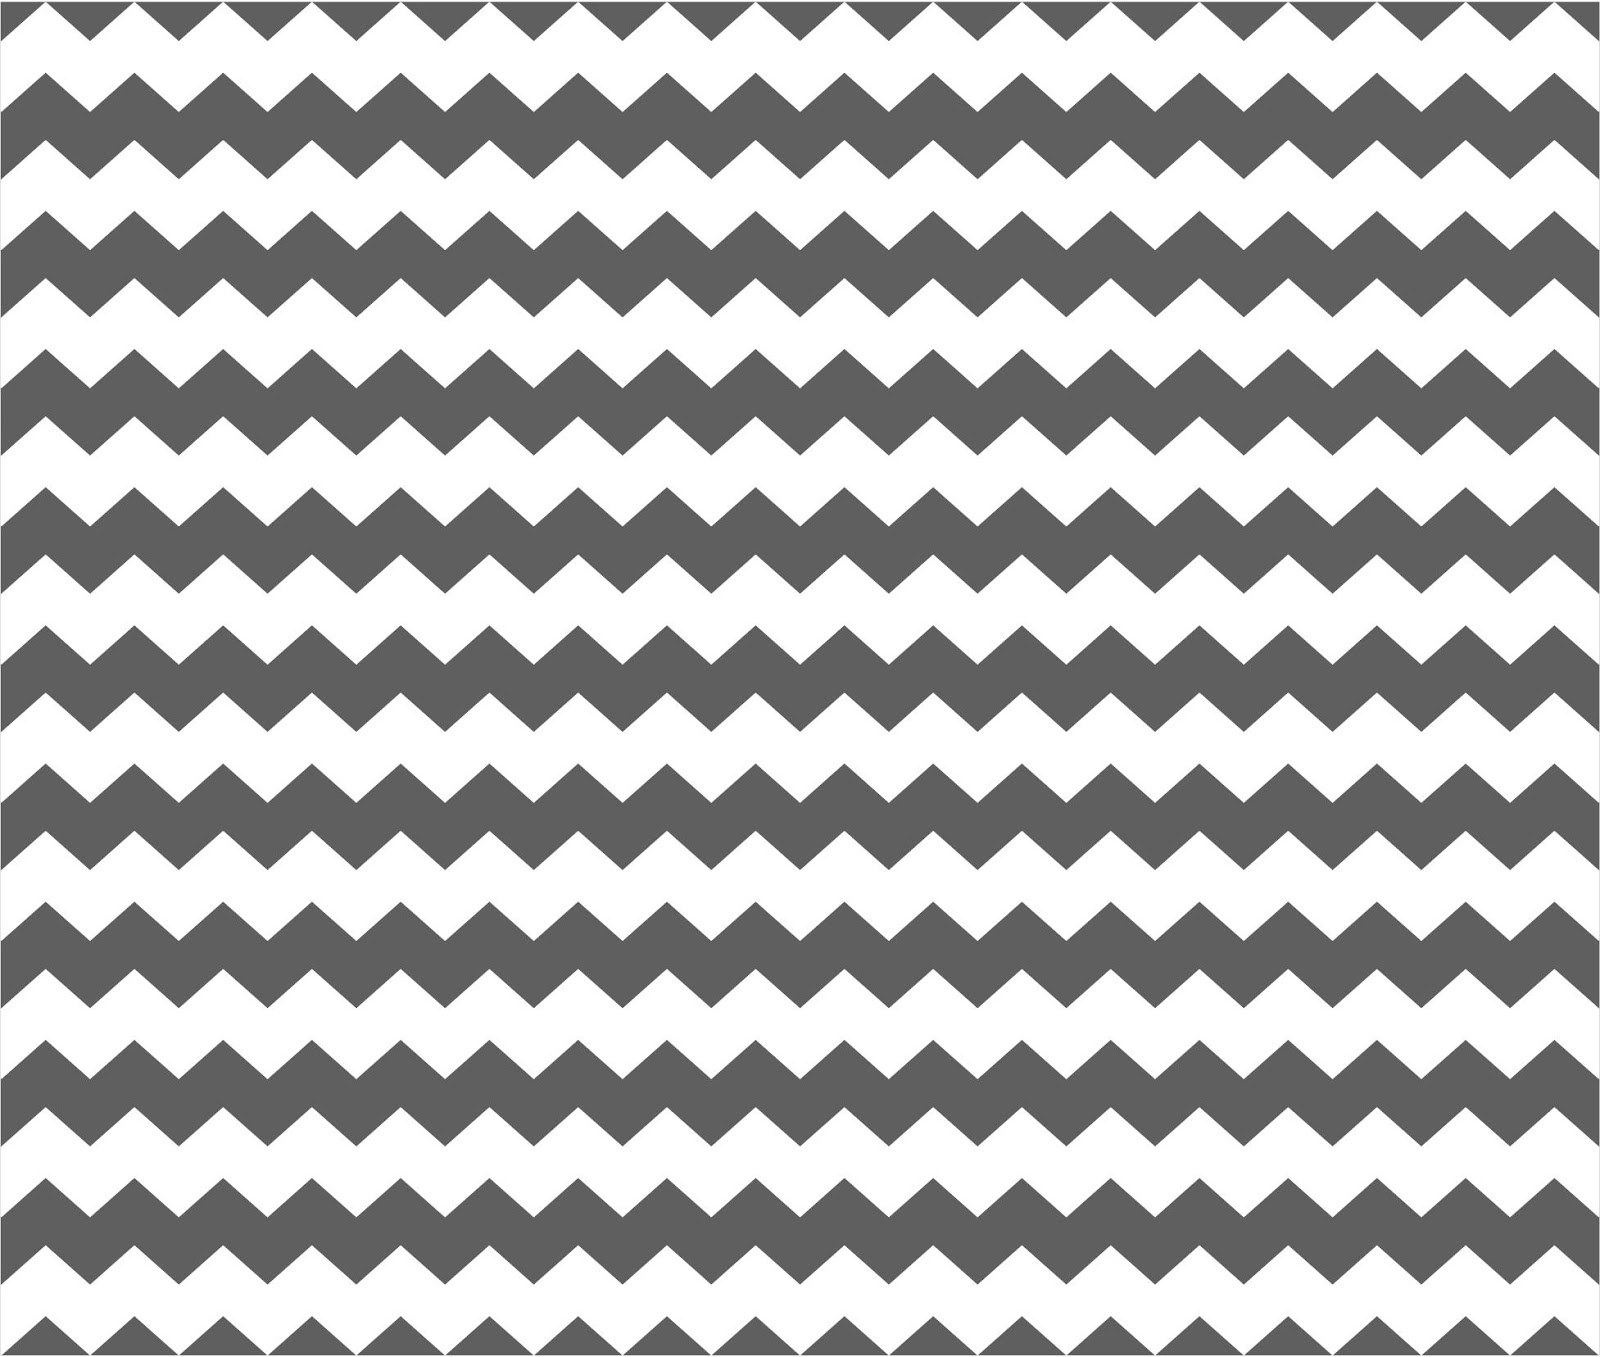 Chevron print background - Two Magical Moms